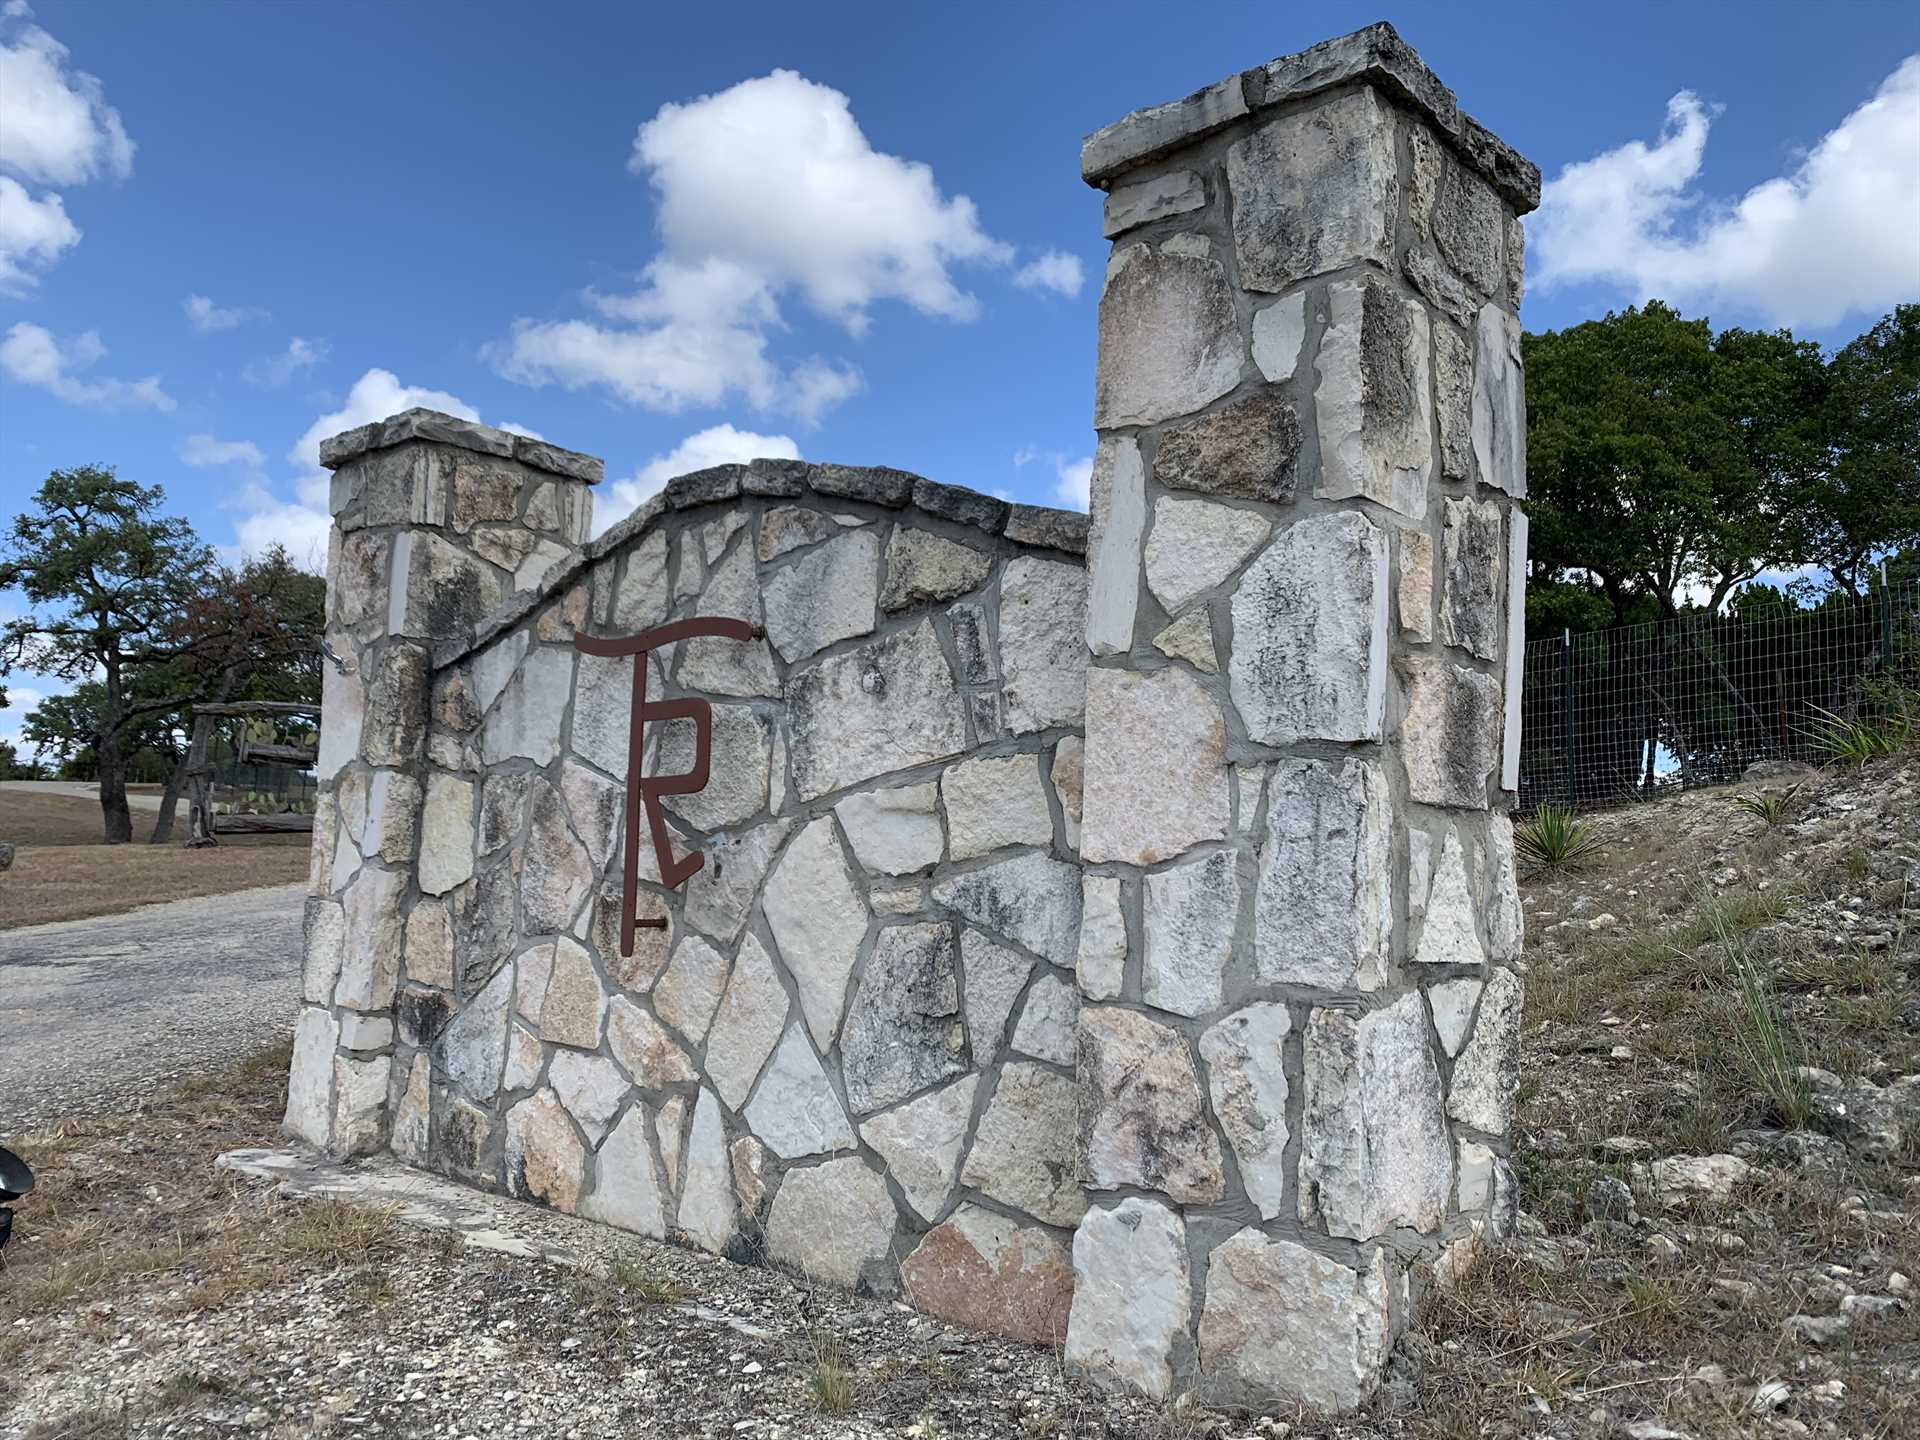 This stone gate on the road marks Tabasco Ranch, and serves as your gateway to a wonderful Hill Country holiday!